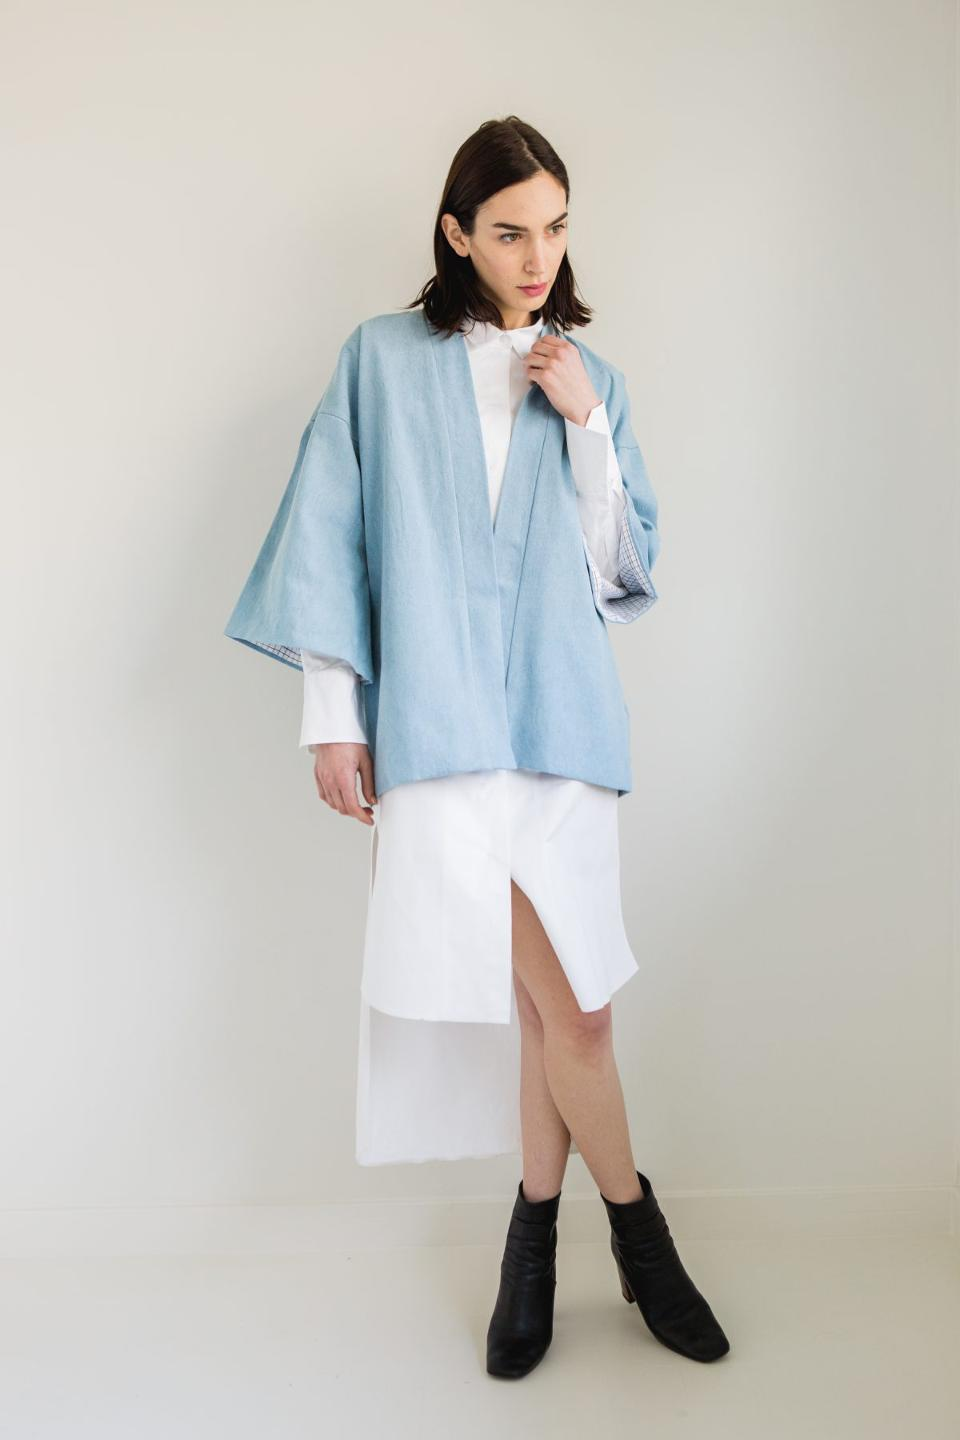 Eat.Sleep.Denim. - Meet the Denim Kimono You'll Wear With Everything